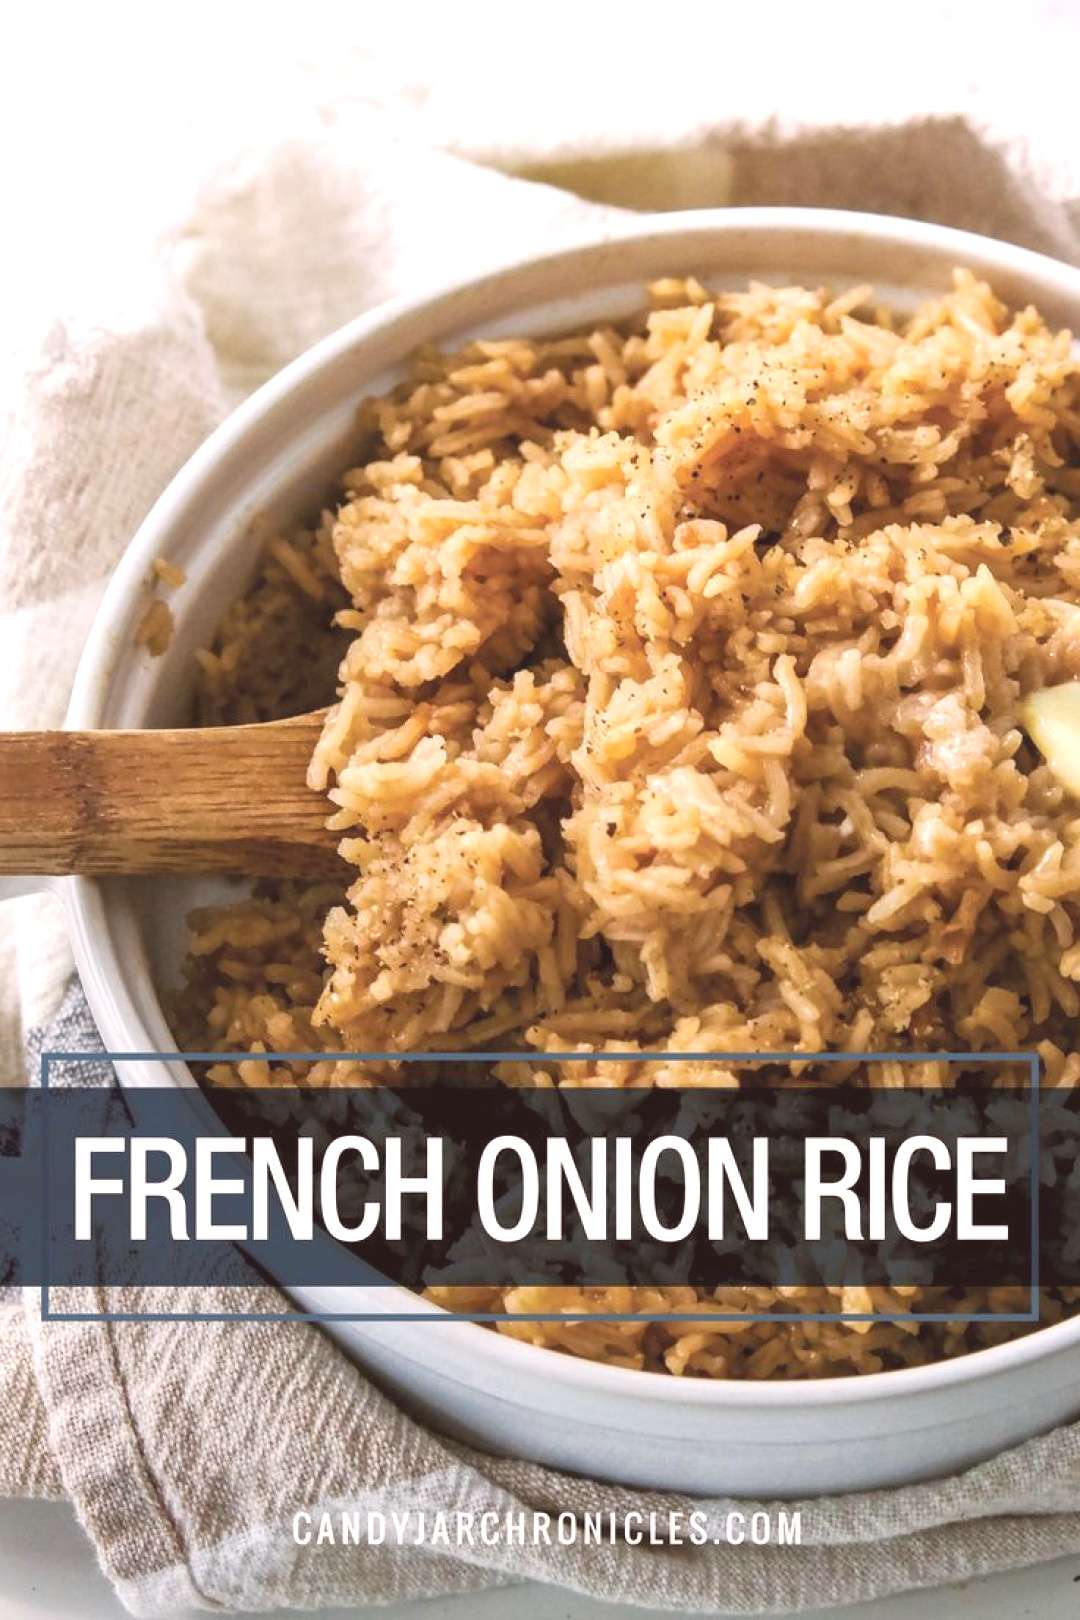 French Onion Rice is an easy recipe combining basmati rice with beef bouillon and onion soup mix. I